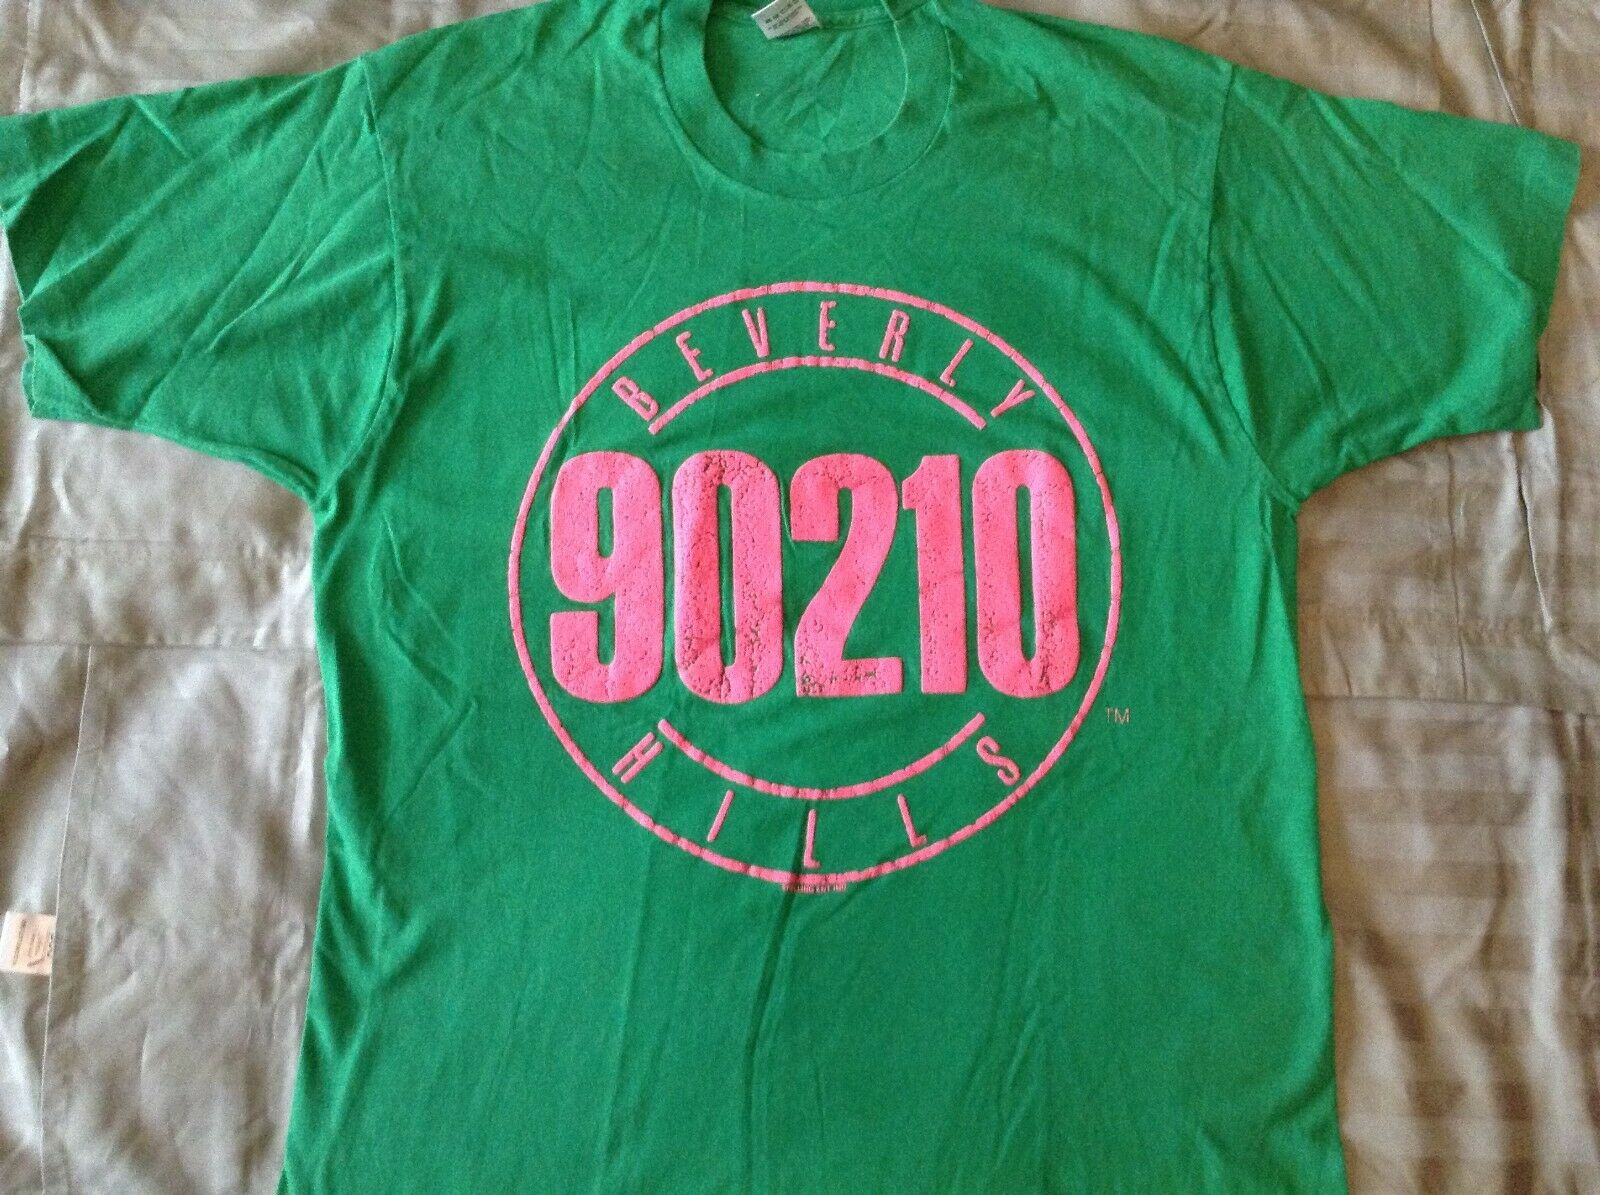 Amazing Vintage Beverly Hills 90201 T-Shirt - Luke Perry Jason Priestly